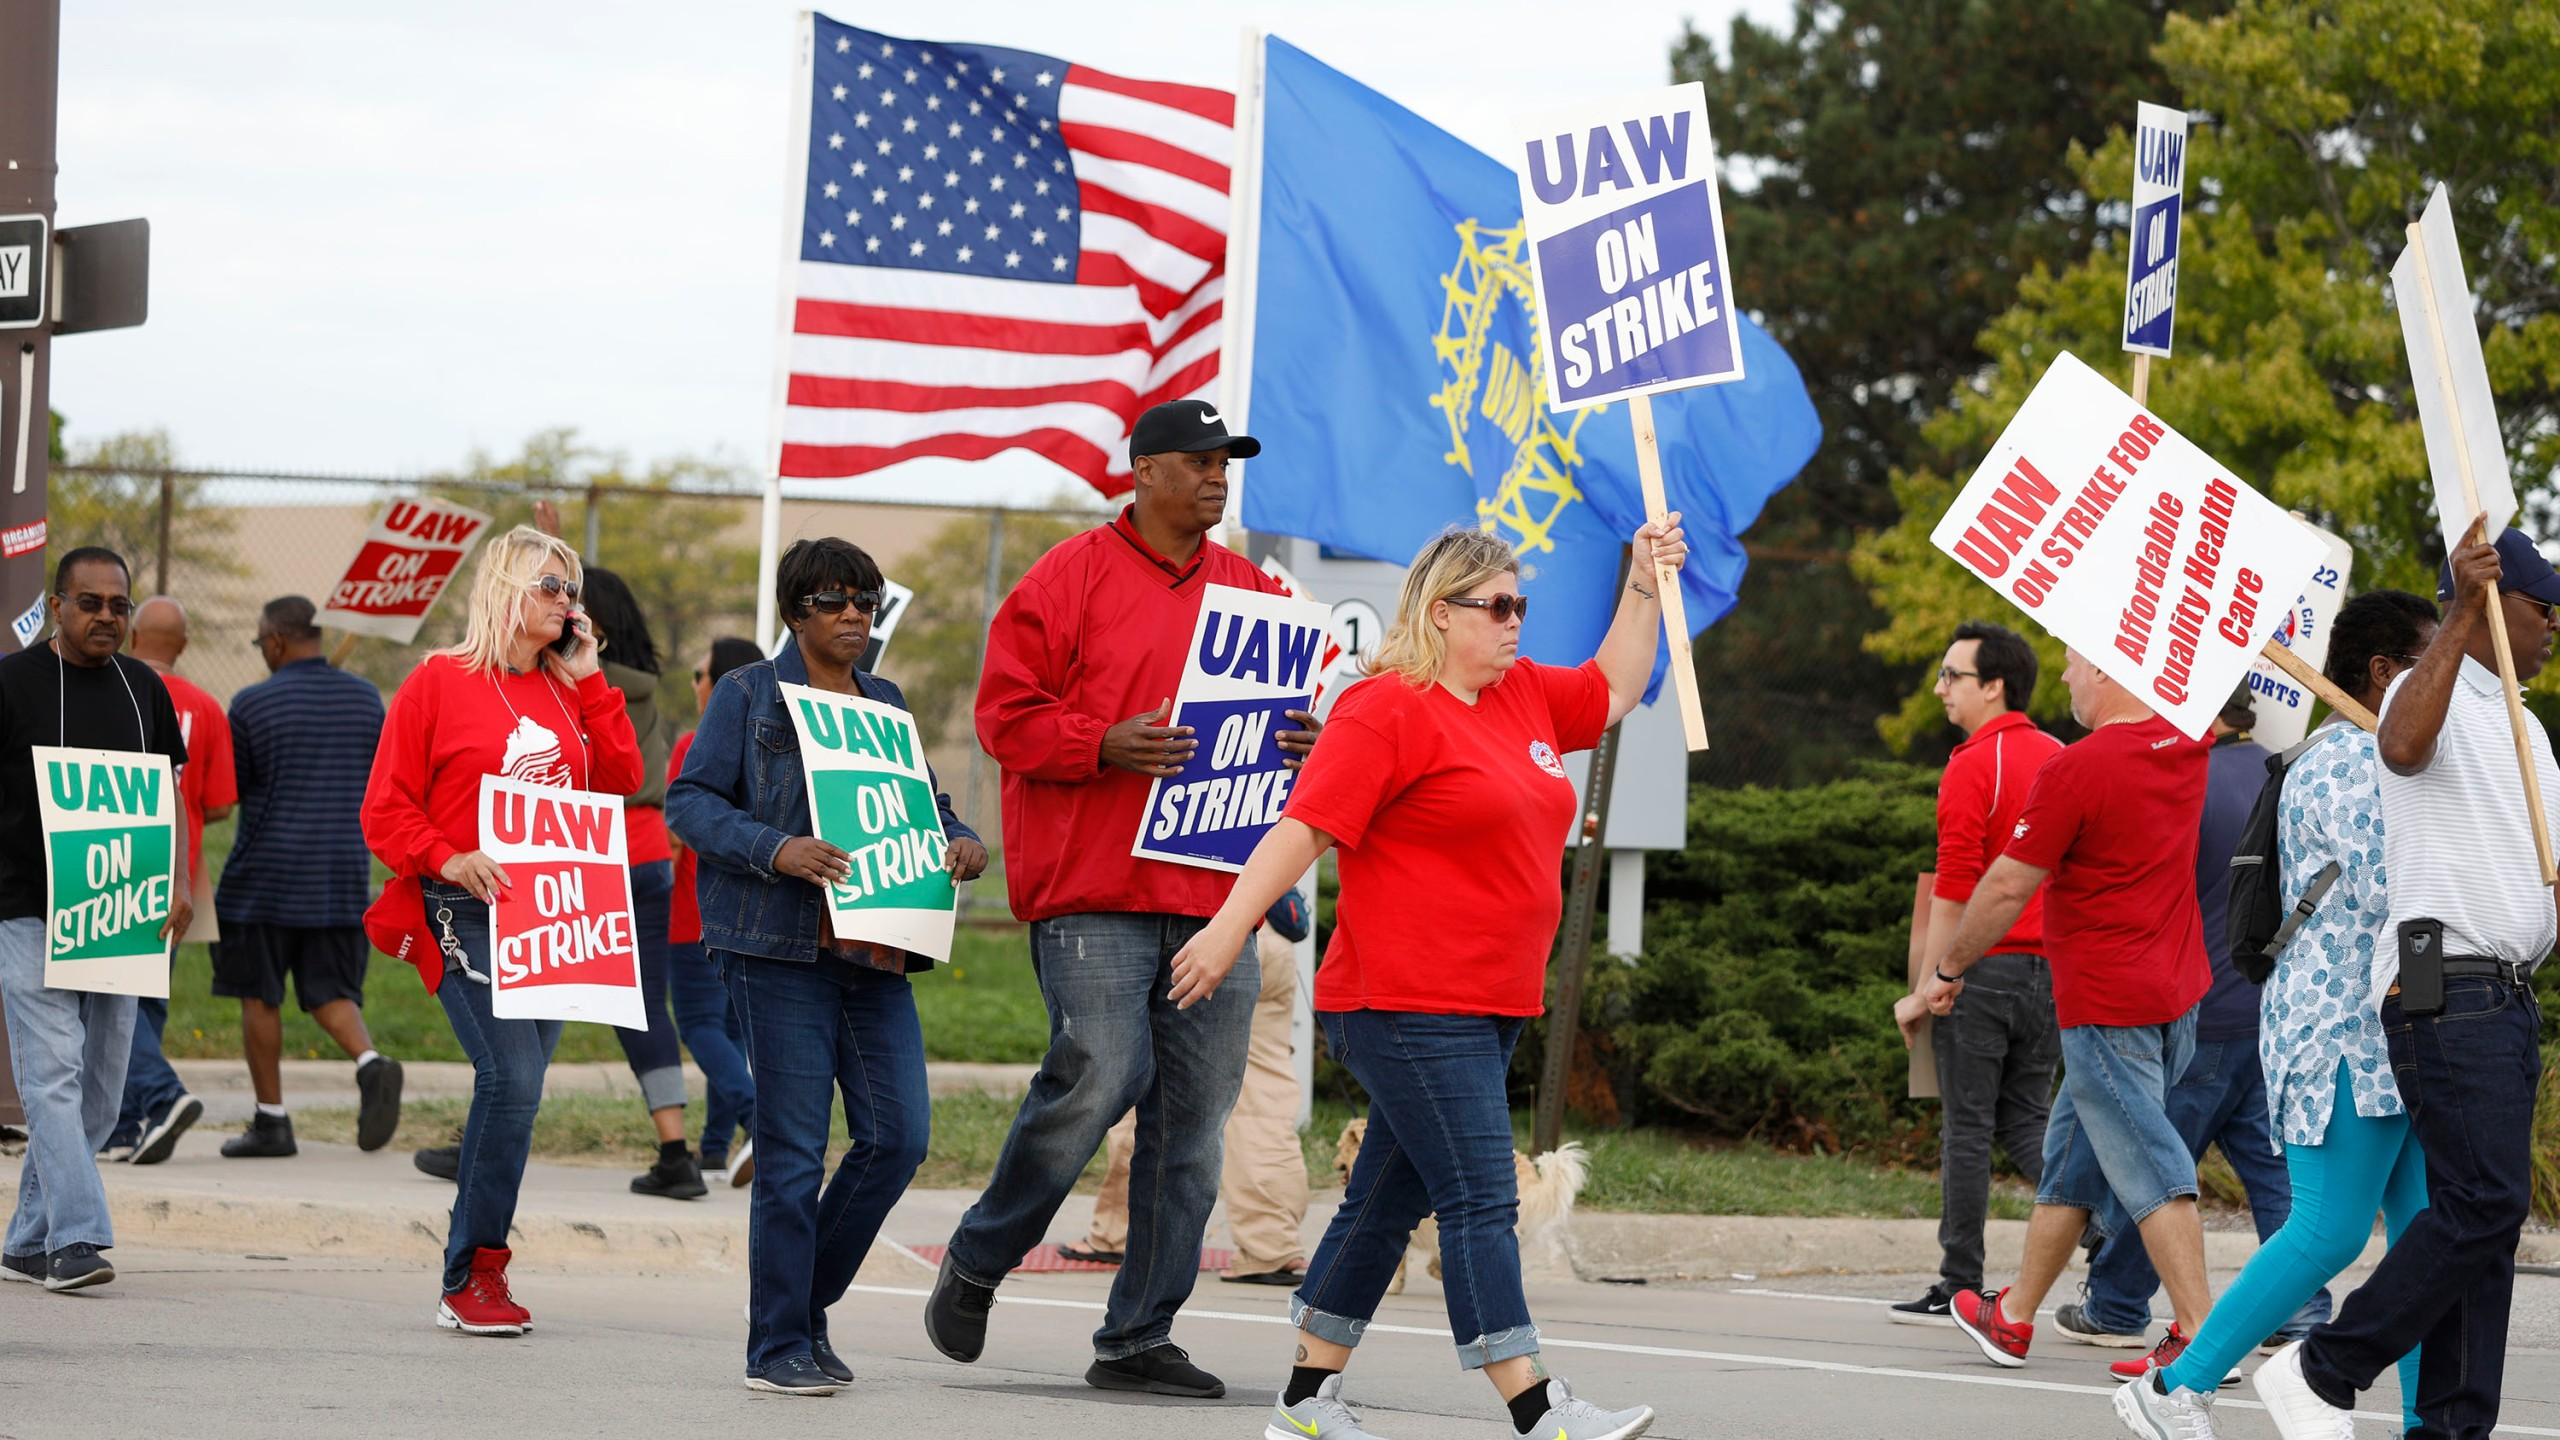 Striking United Auto Workers (UAW) union members picket at the General Motors Detroit-Hamtramck Assembly Plant on Sept. 25, 2019, in Detroit, Mich. (Credit: Bill Pugliano/Getty Images)